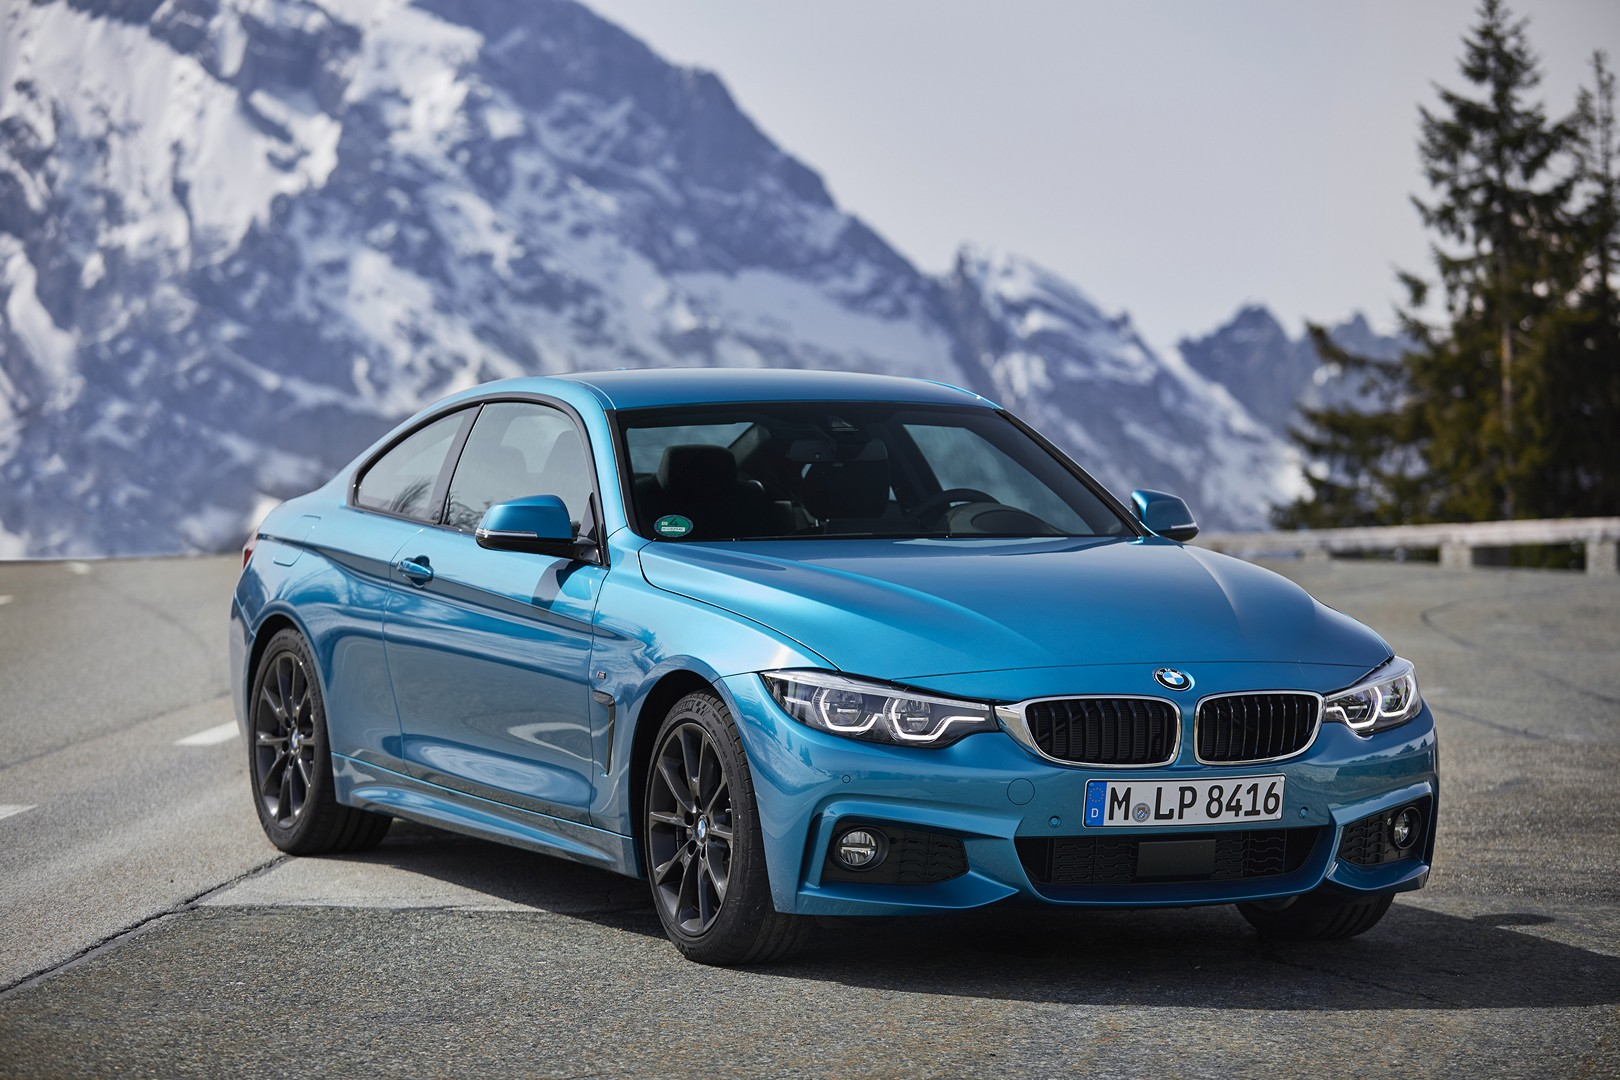 2018 bmw 440i m sport coupe gets new launch photos and - Bmw 3 series m sport coupe ...